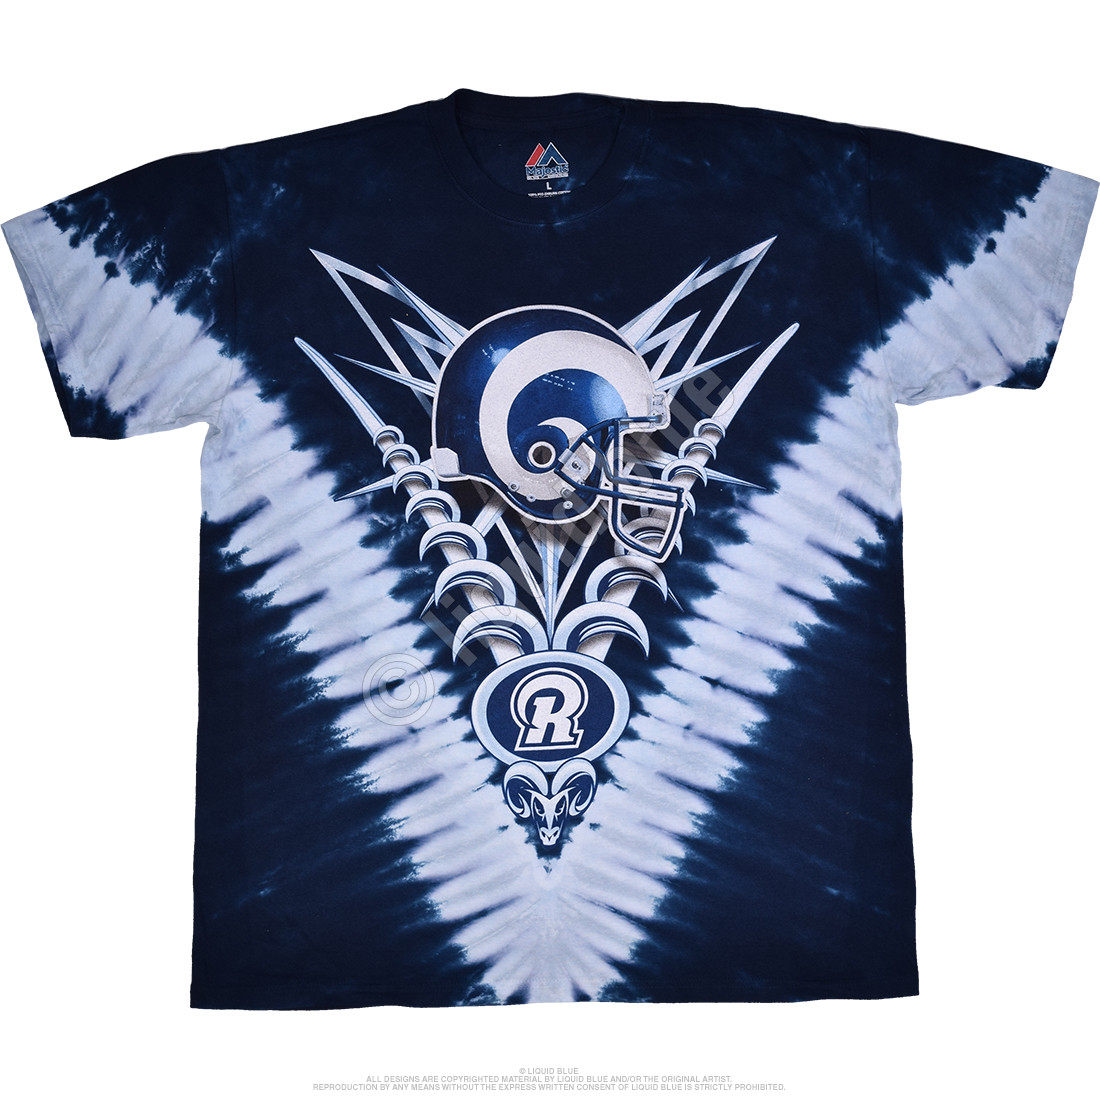 Los Angeles Rams V Tie-Dye T-Shirt Tee